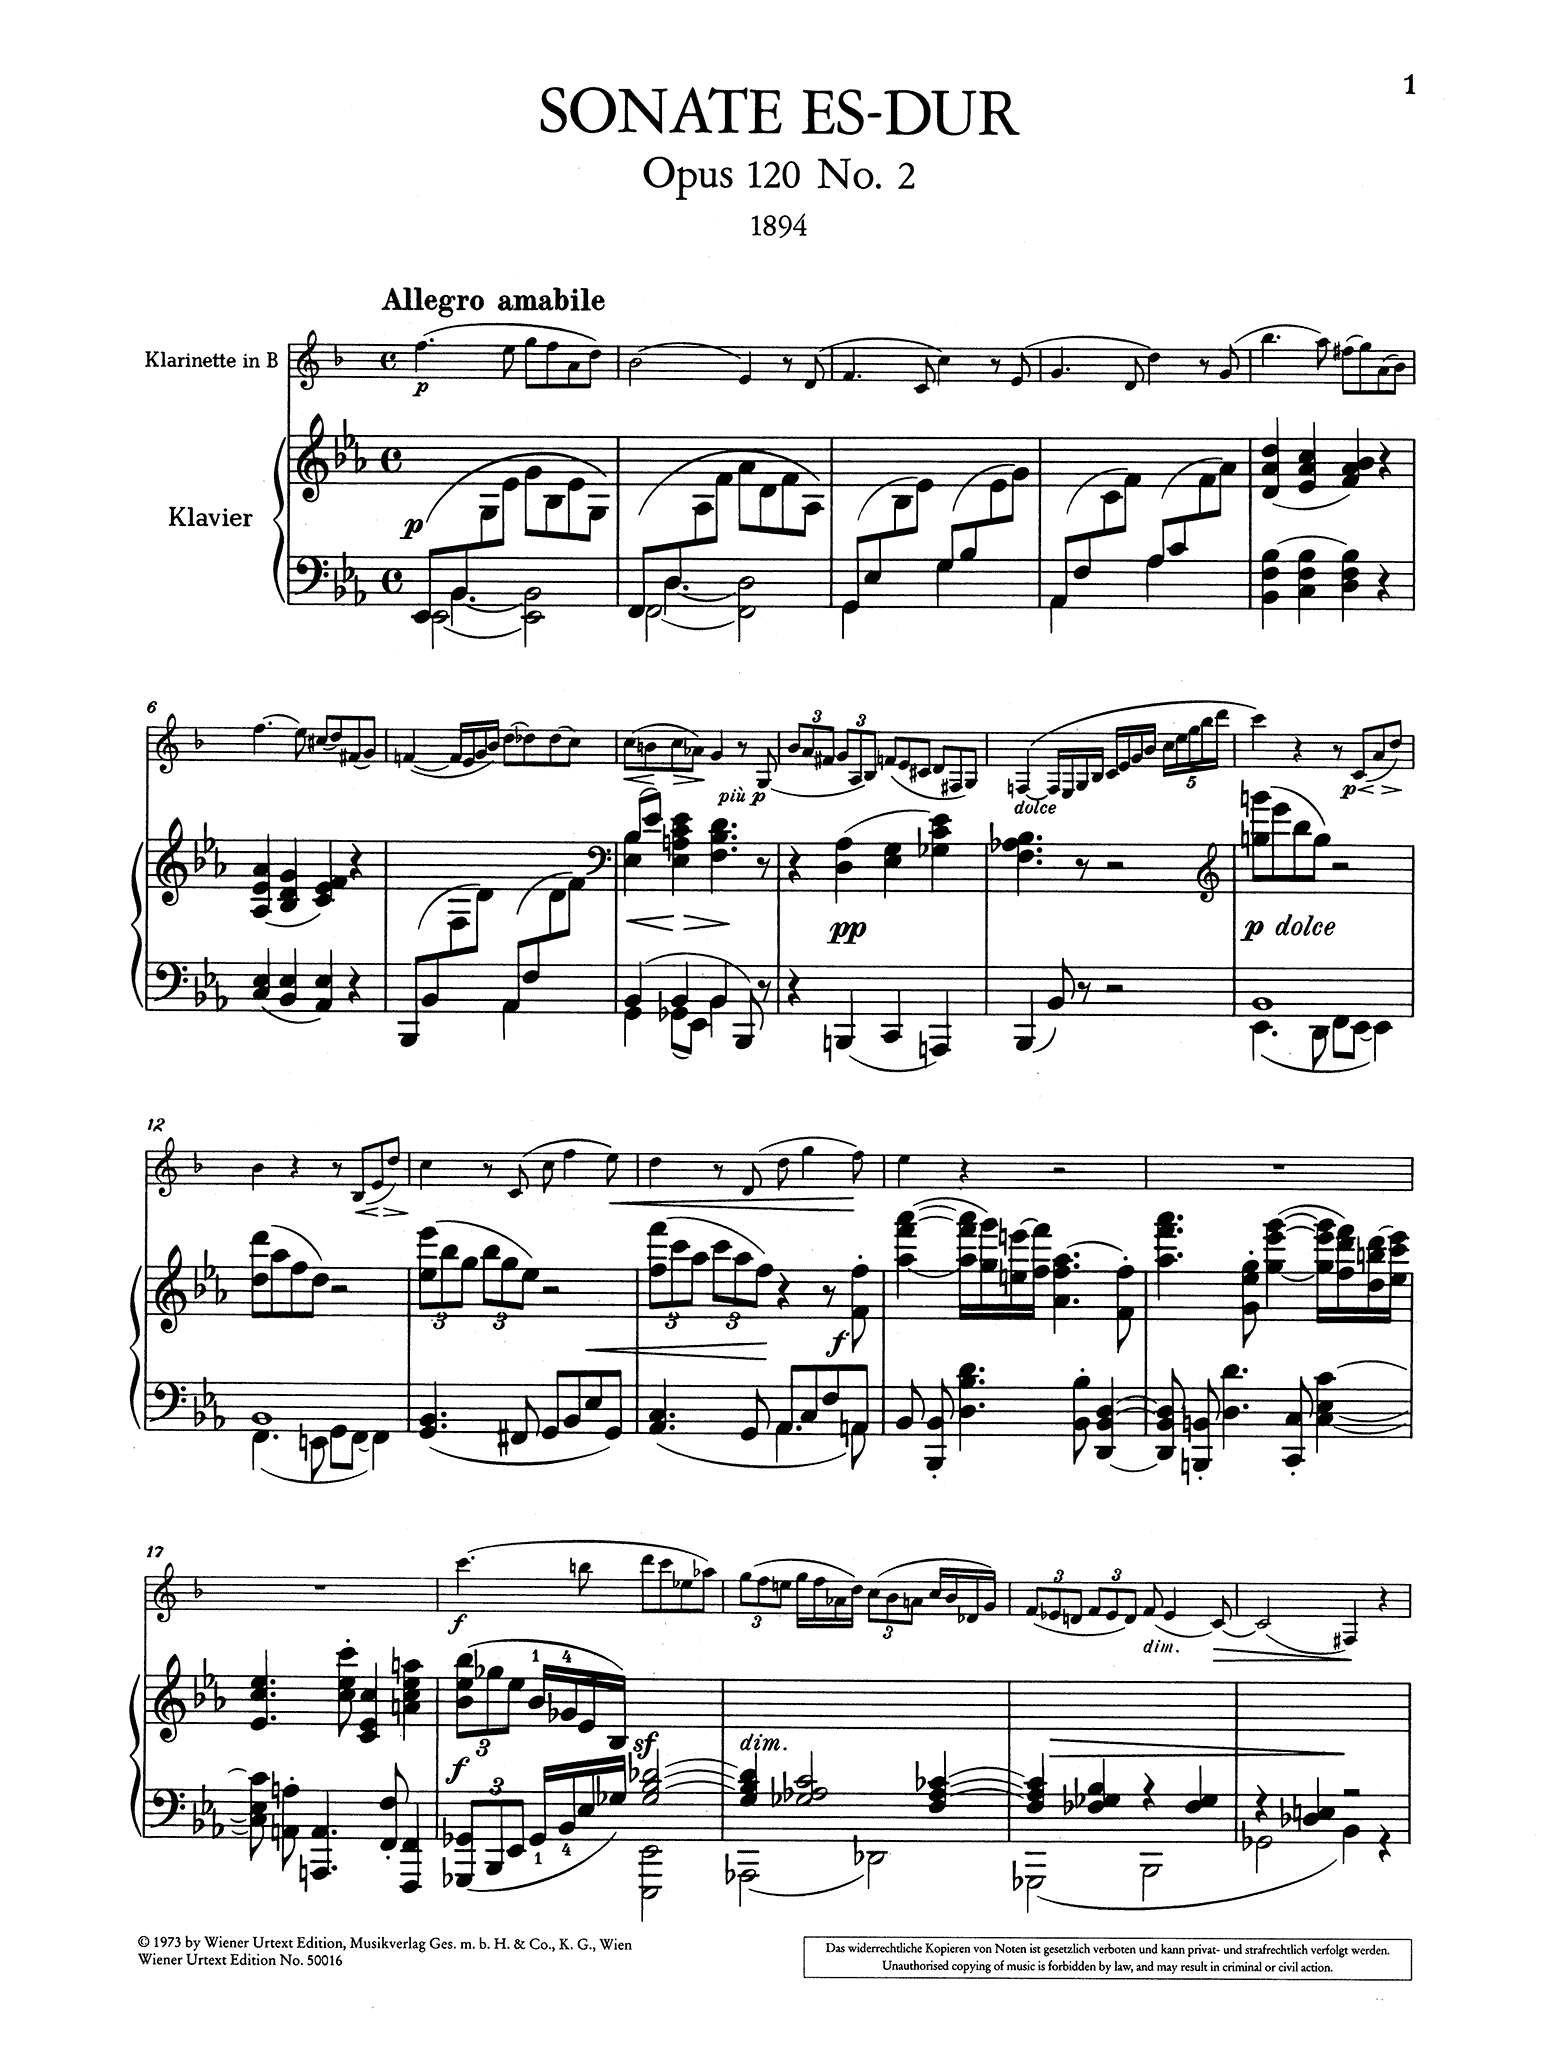 Sonata in E-flat Major, Op. 120 No. 2 - Movement 1